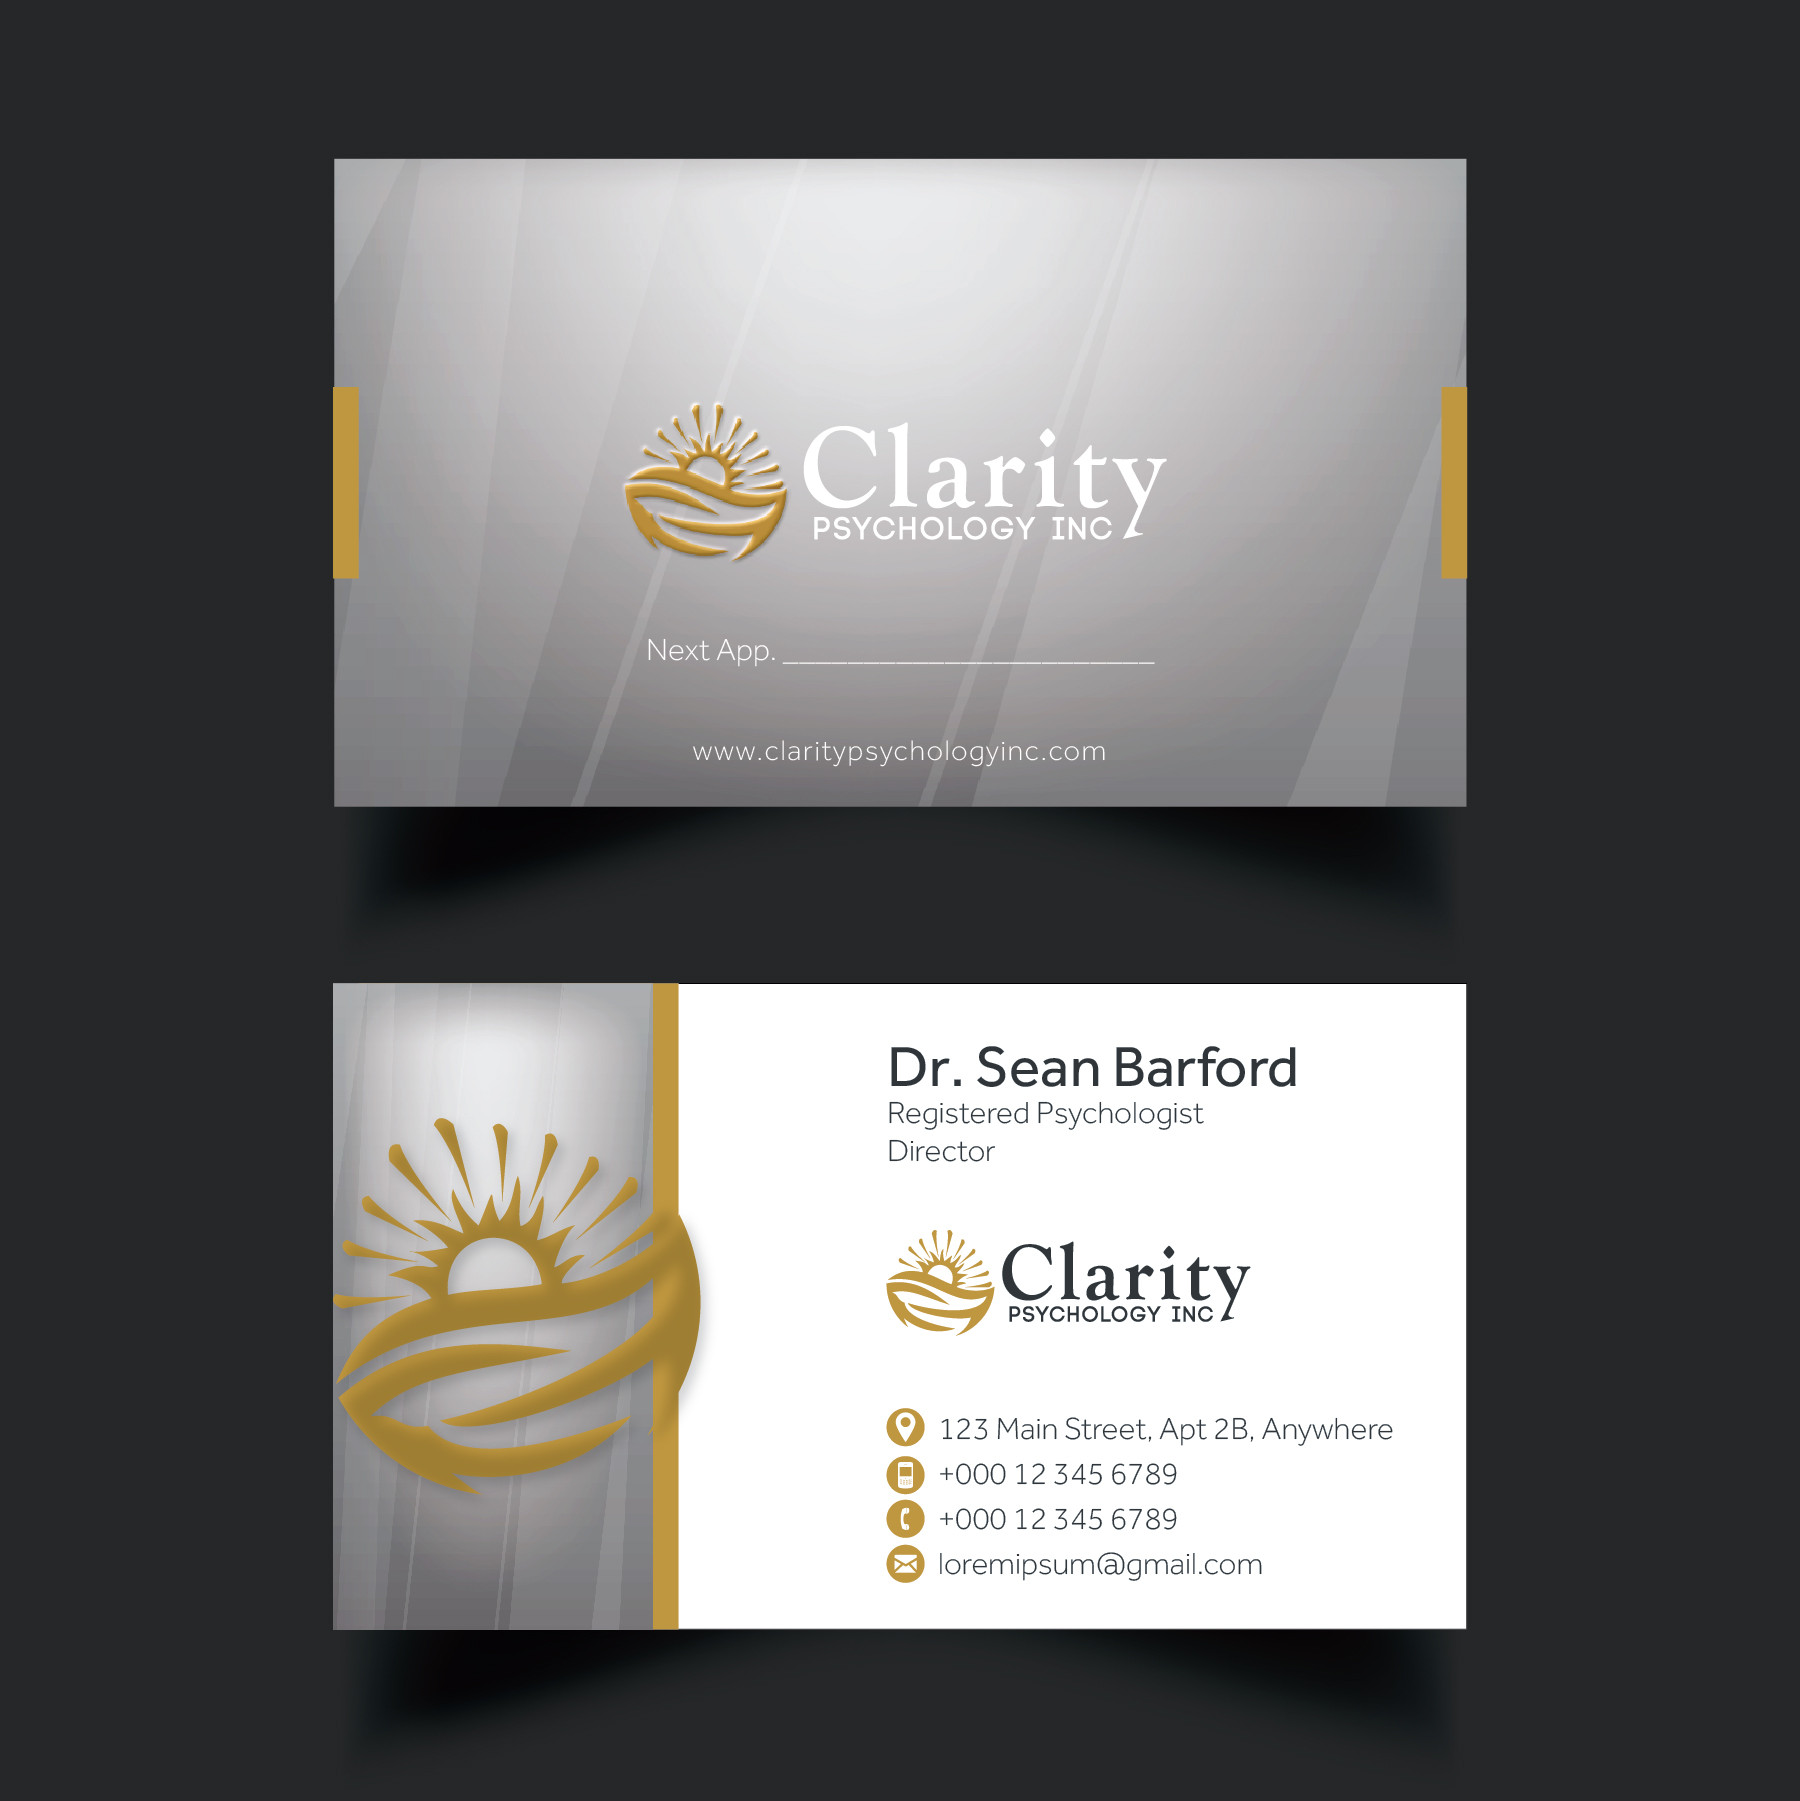 Business card design contests professional business card design business card design by shahab uddin entry no 80 in the business card design magicingreecefo Choice Image